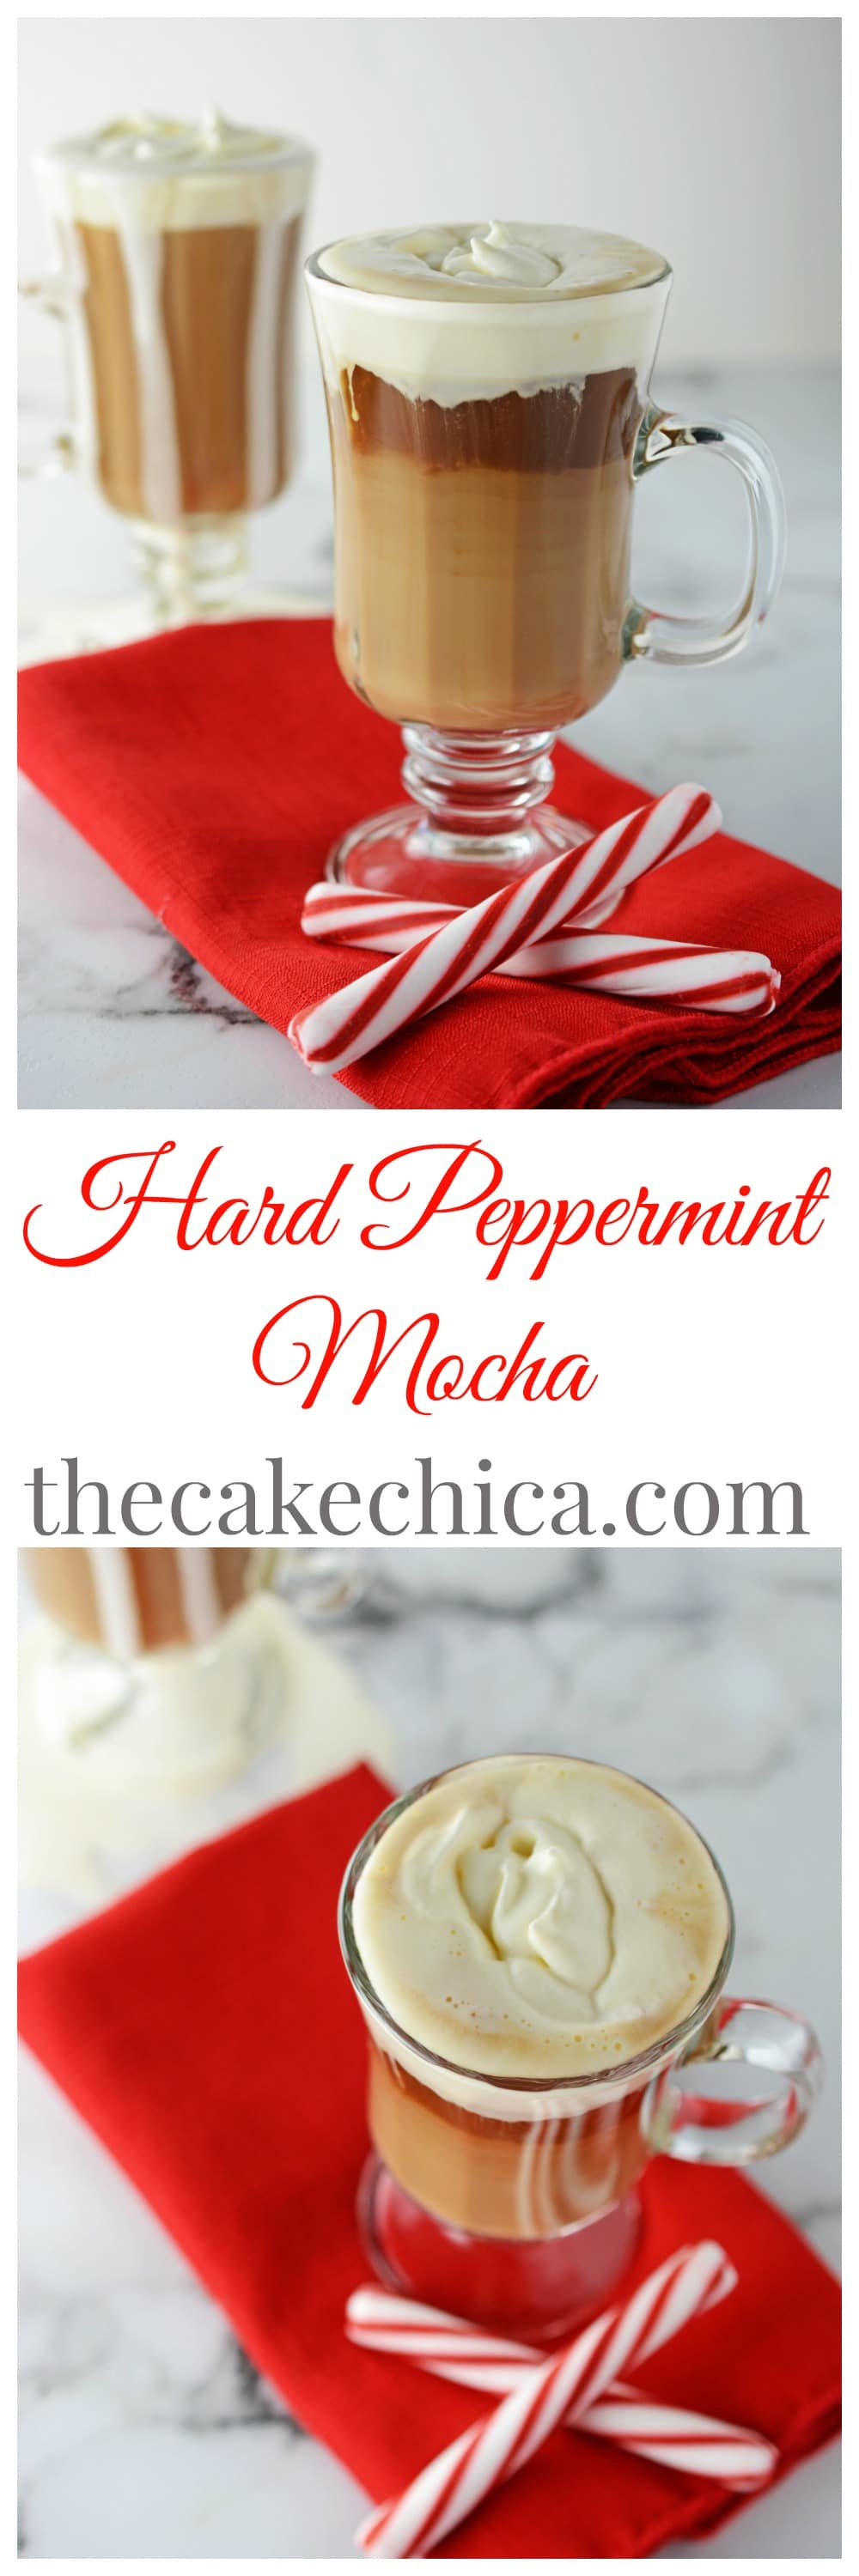 hard-peppermint-mocha-for-pinterest